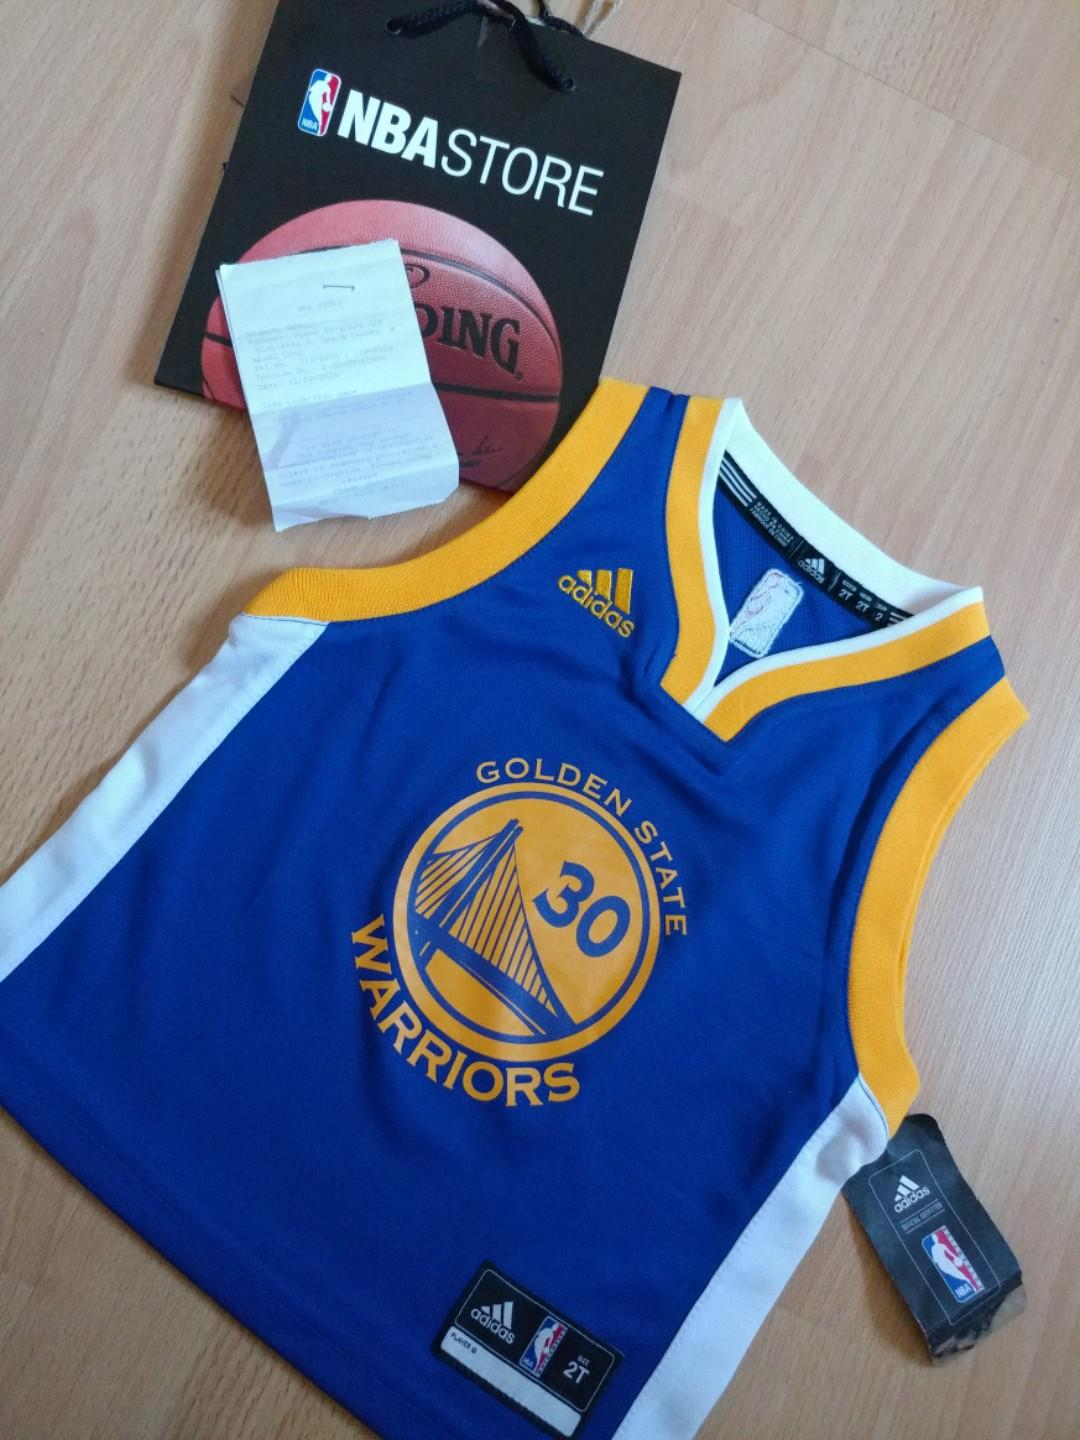 sports shoes 2a498 2c8e6 Authentic GSW Stephen Curry NBA Jersey, Babies & Kids, Boys ...